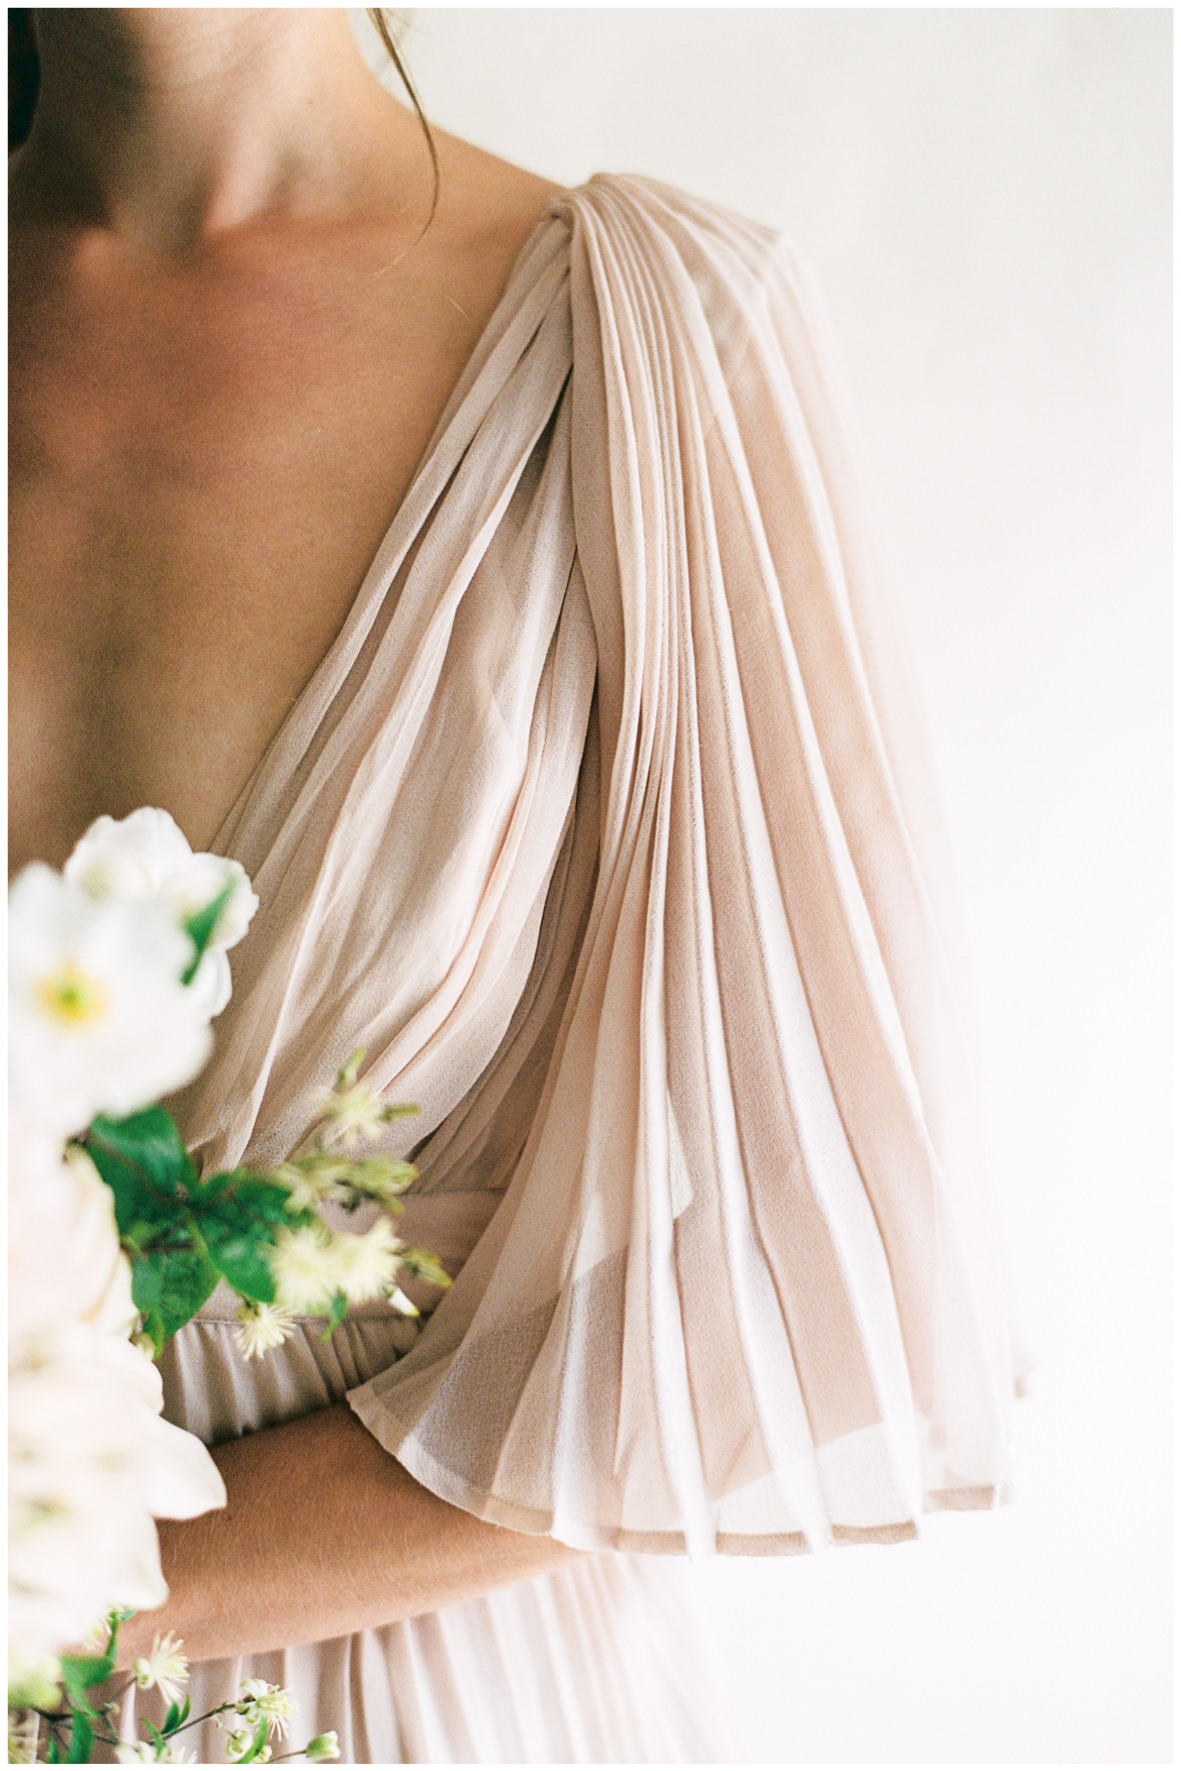 Lucy Davenport Photography, Once Wed, Home Creations, The Wedding Stylist, Verity & Thyme, coloured wedding dress, florals, bouquet,